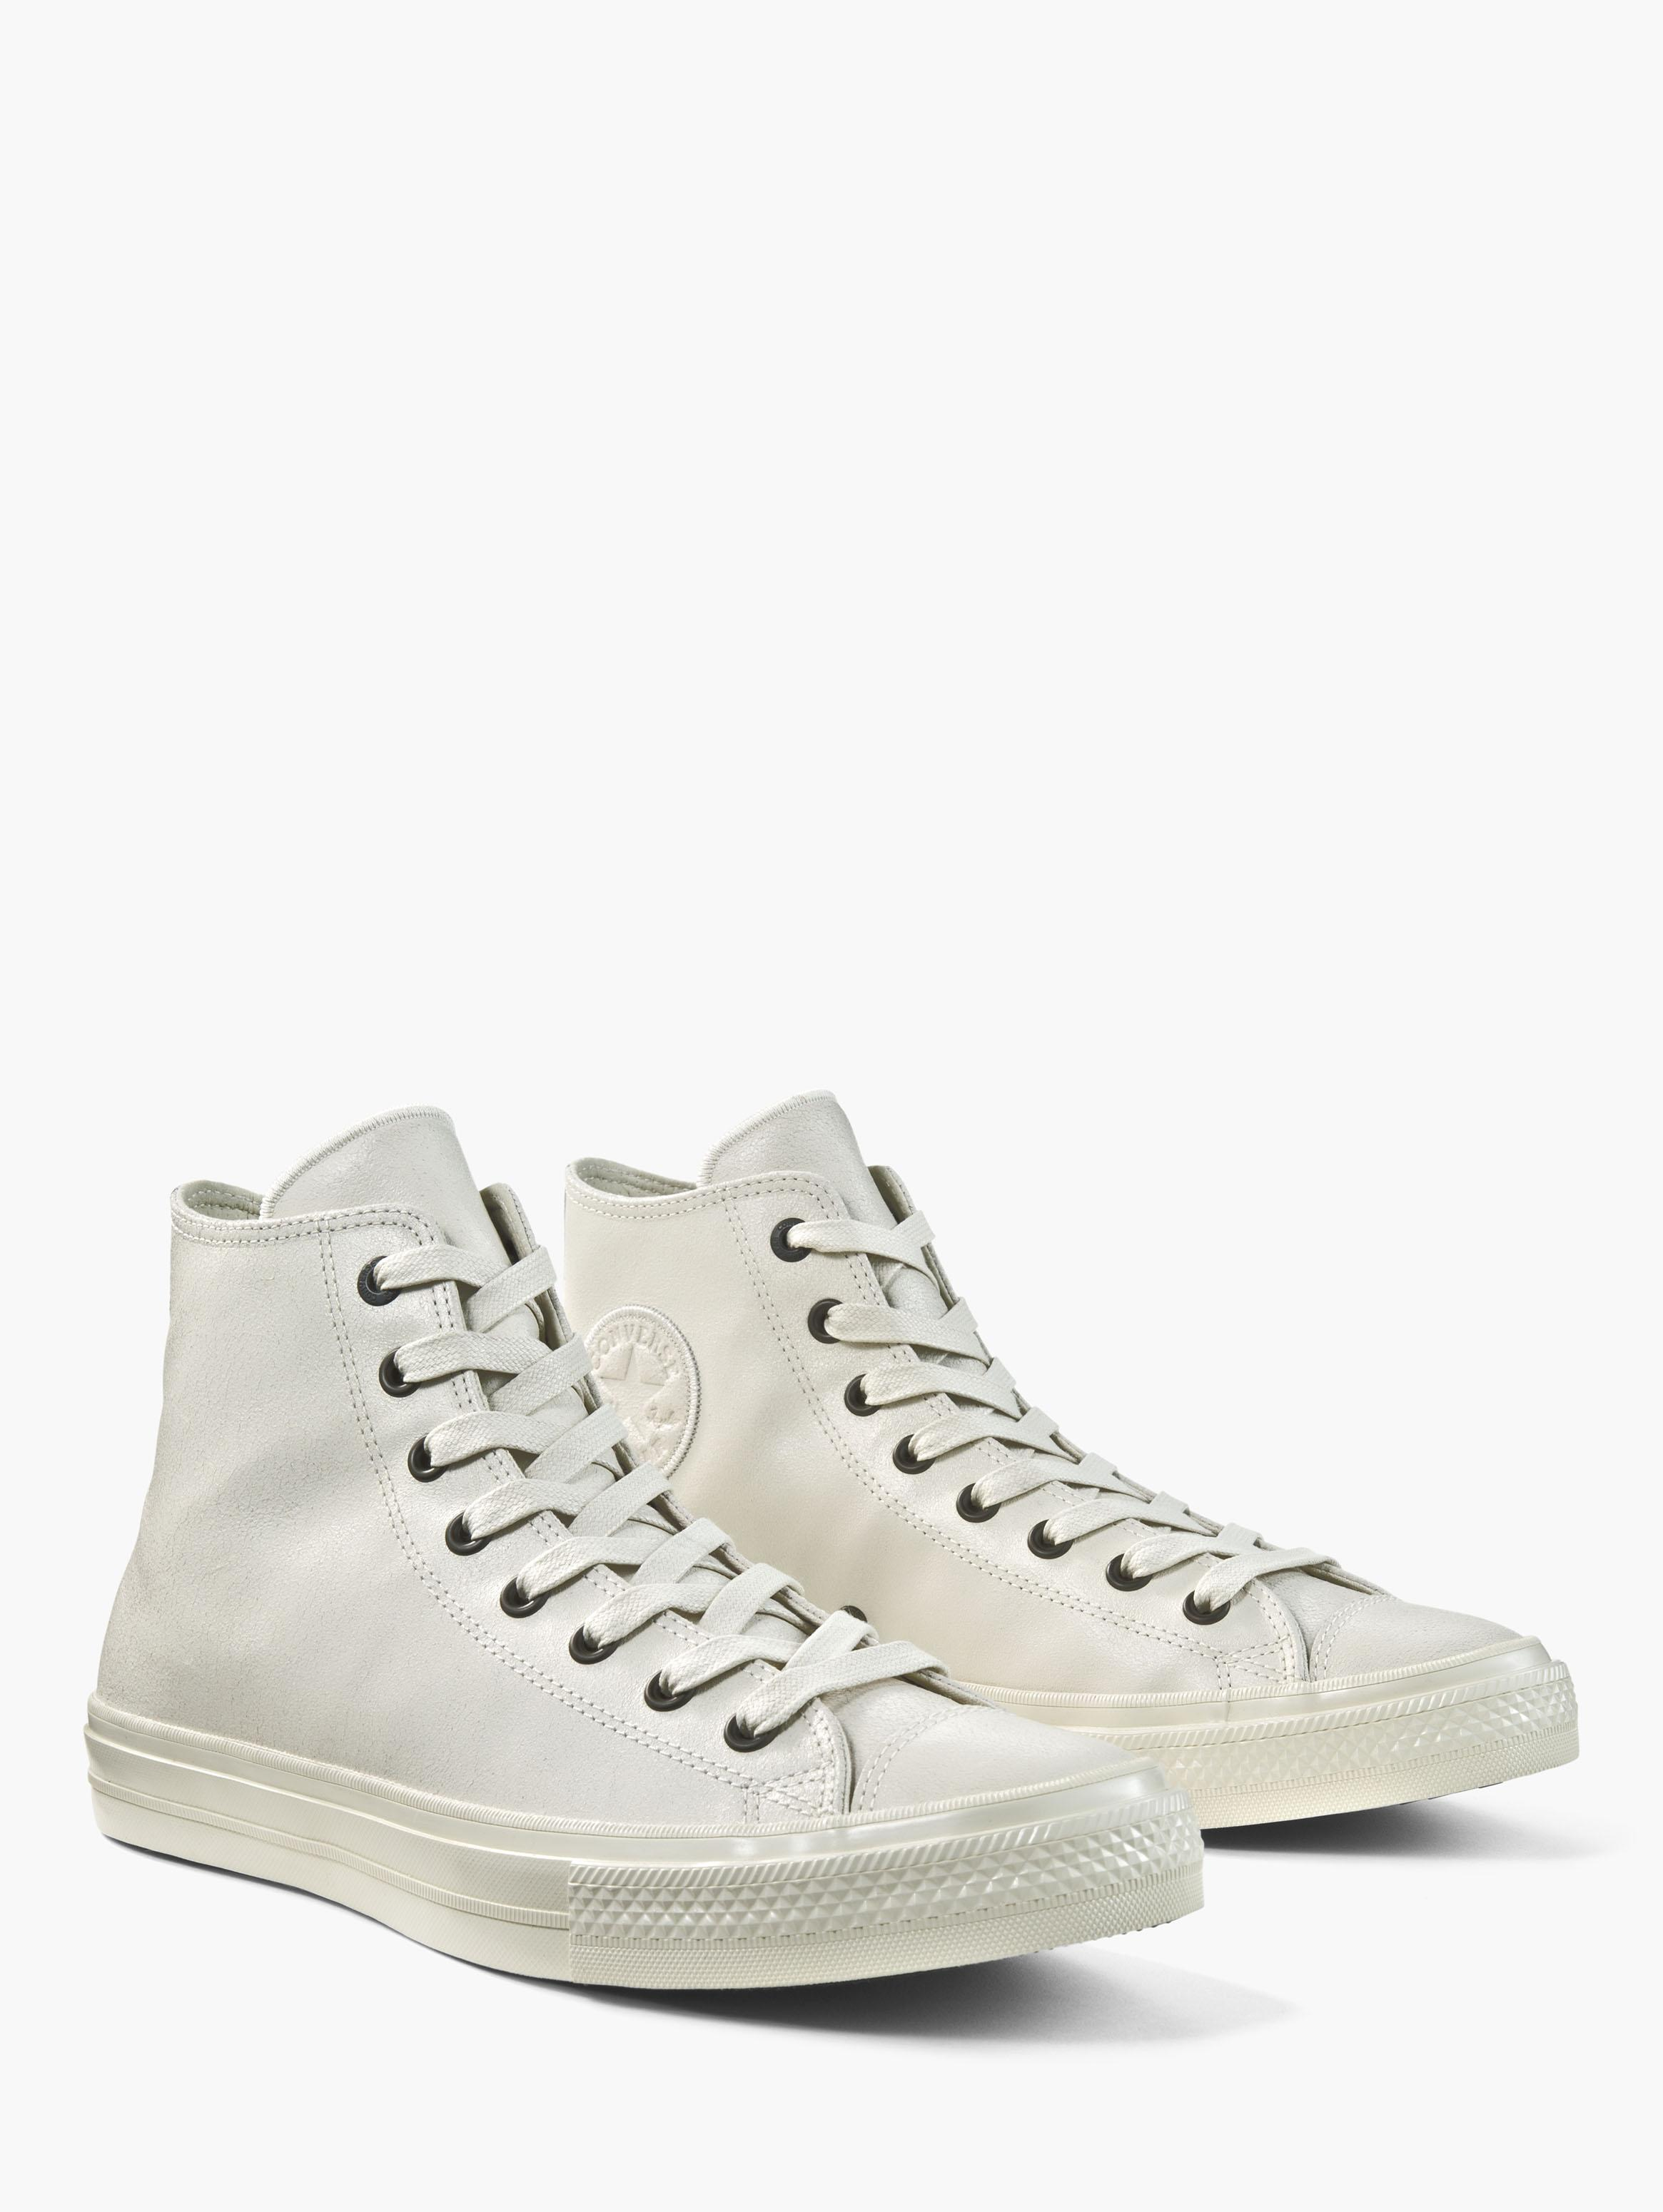 converse shoes high tops. chuck ii coated leather high top converse shoes tops